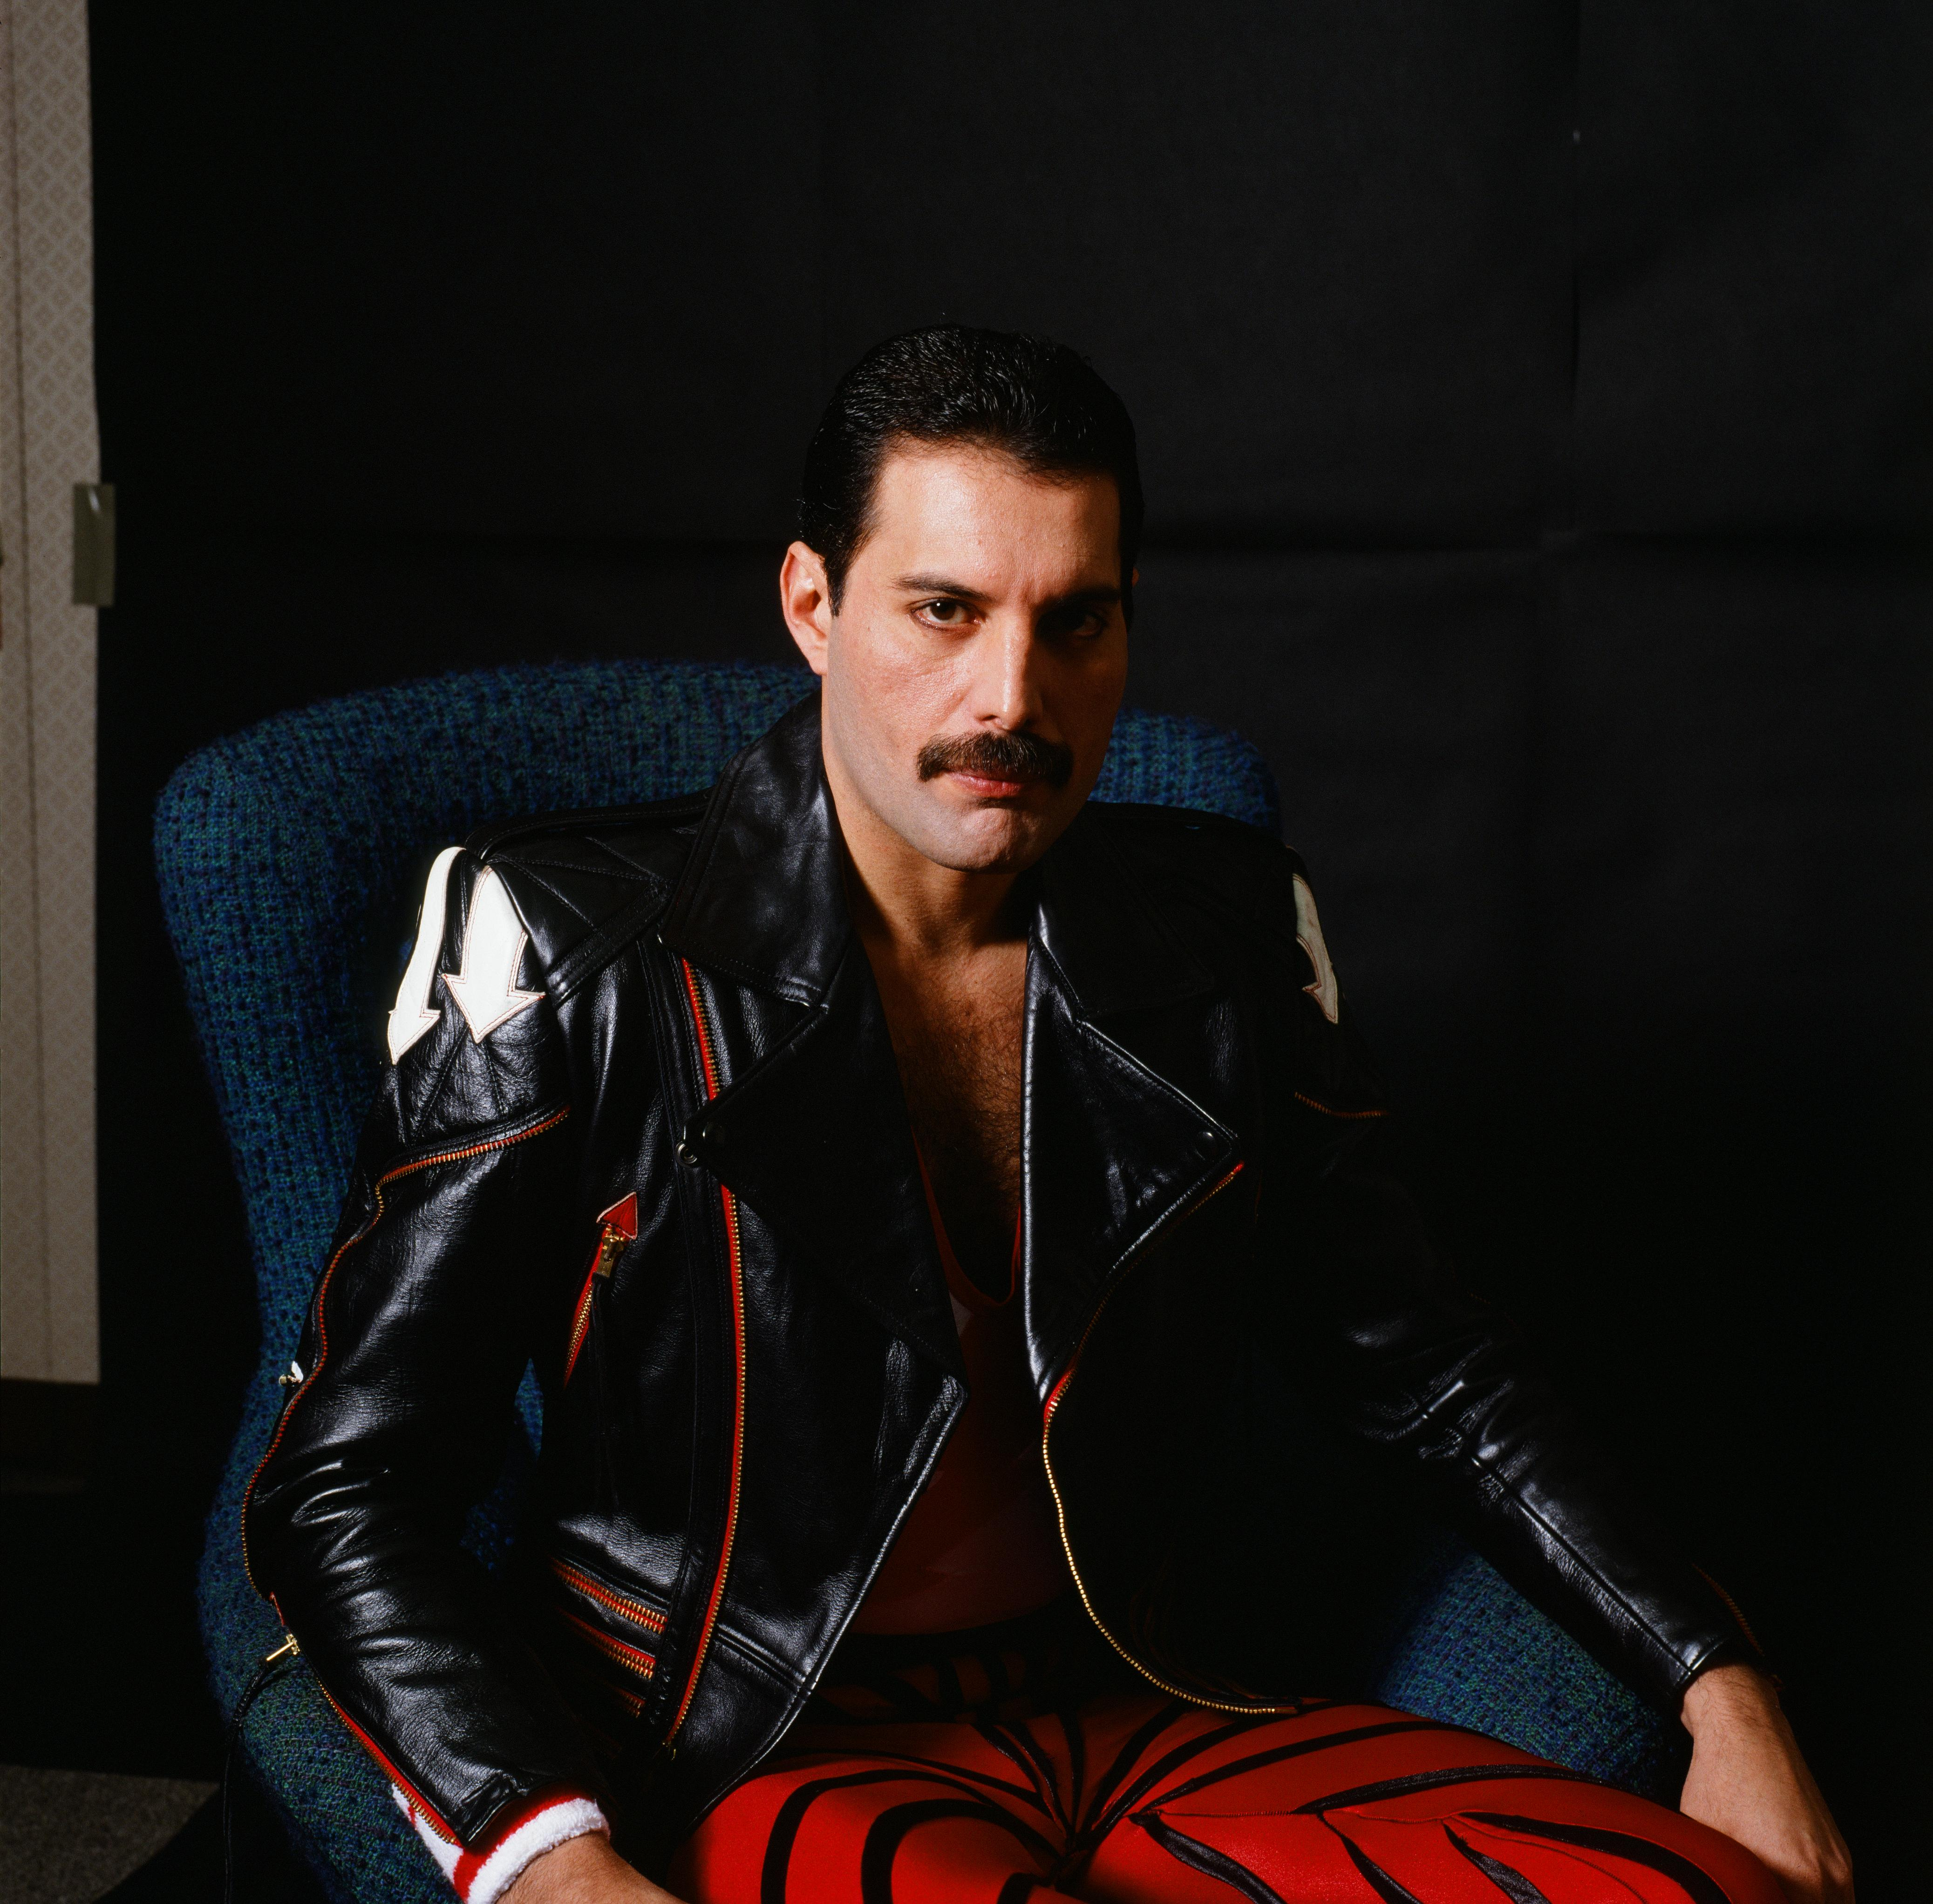 Freddie Mercury of Queen, portrait for Japanese music magazine 'Music Life', Tokyo, Japan , 1985. | Photo: GettyImages